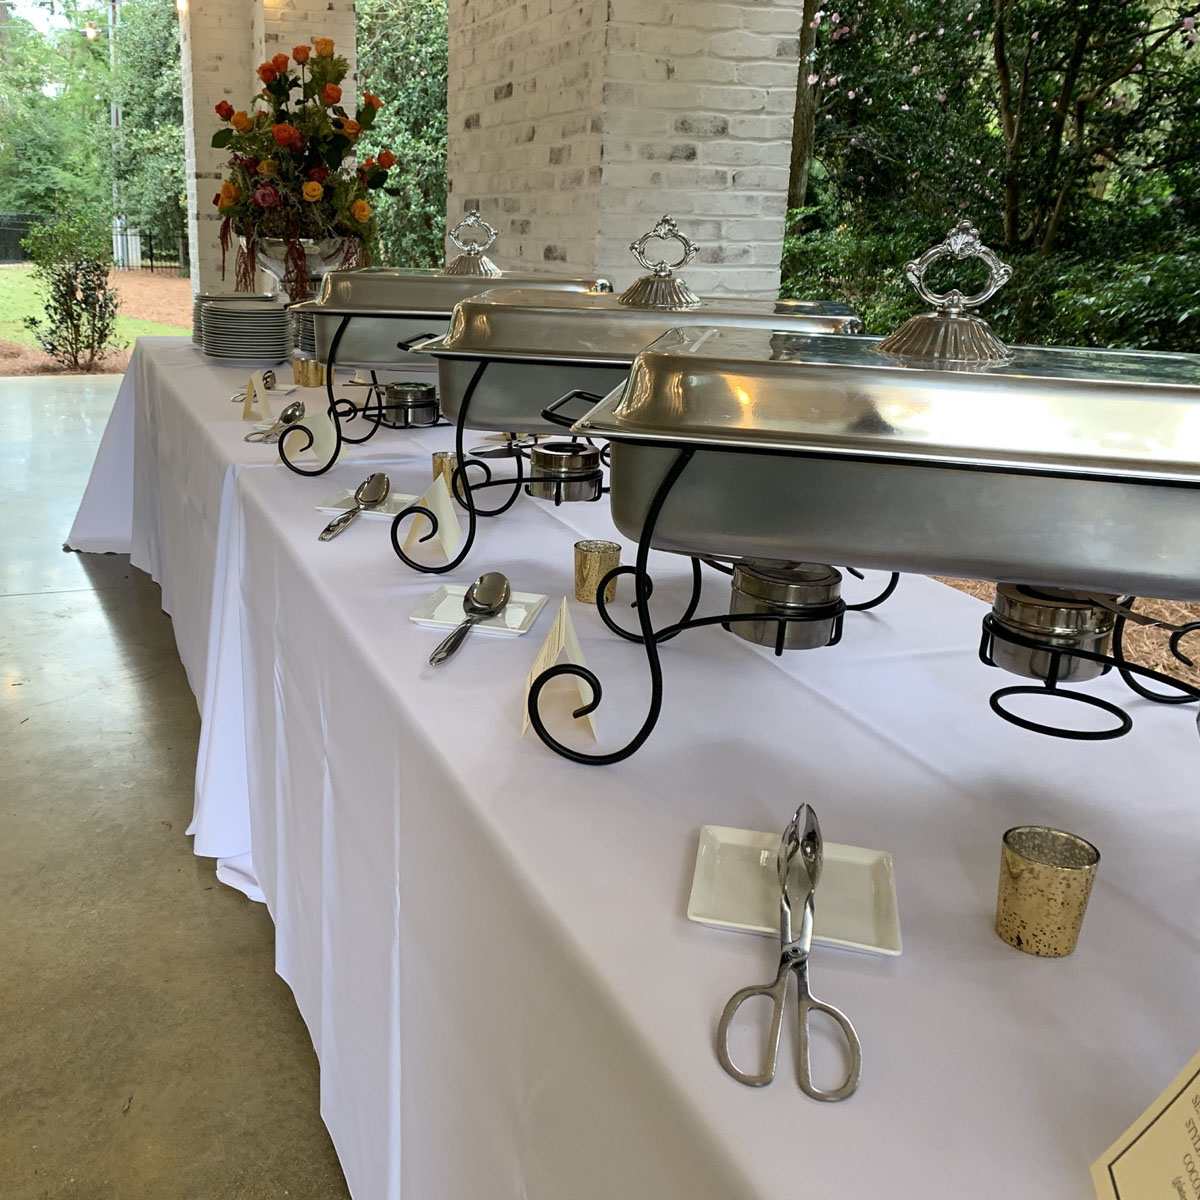 Buffet style dinner set up with chafing dishes, white tablecloths, tealight candles and floral arrangements